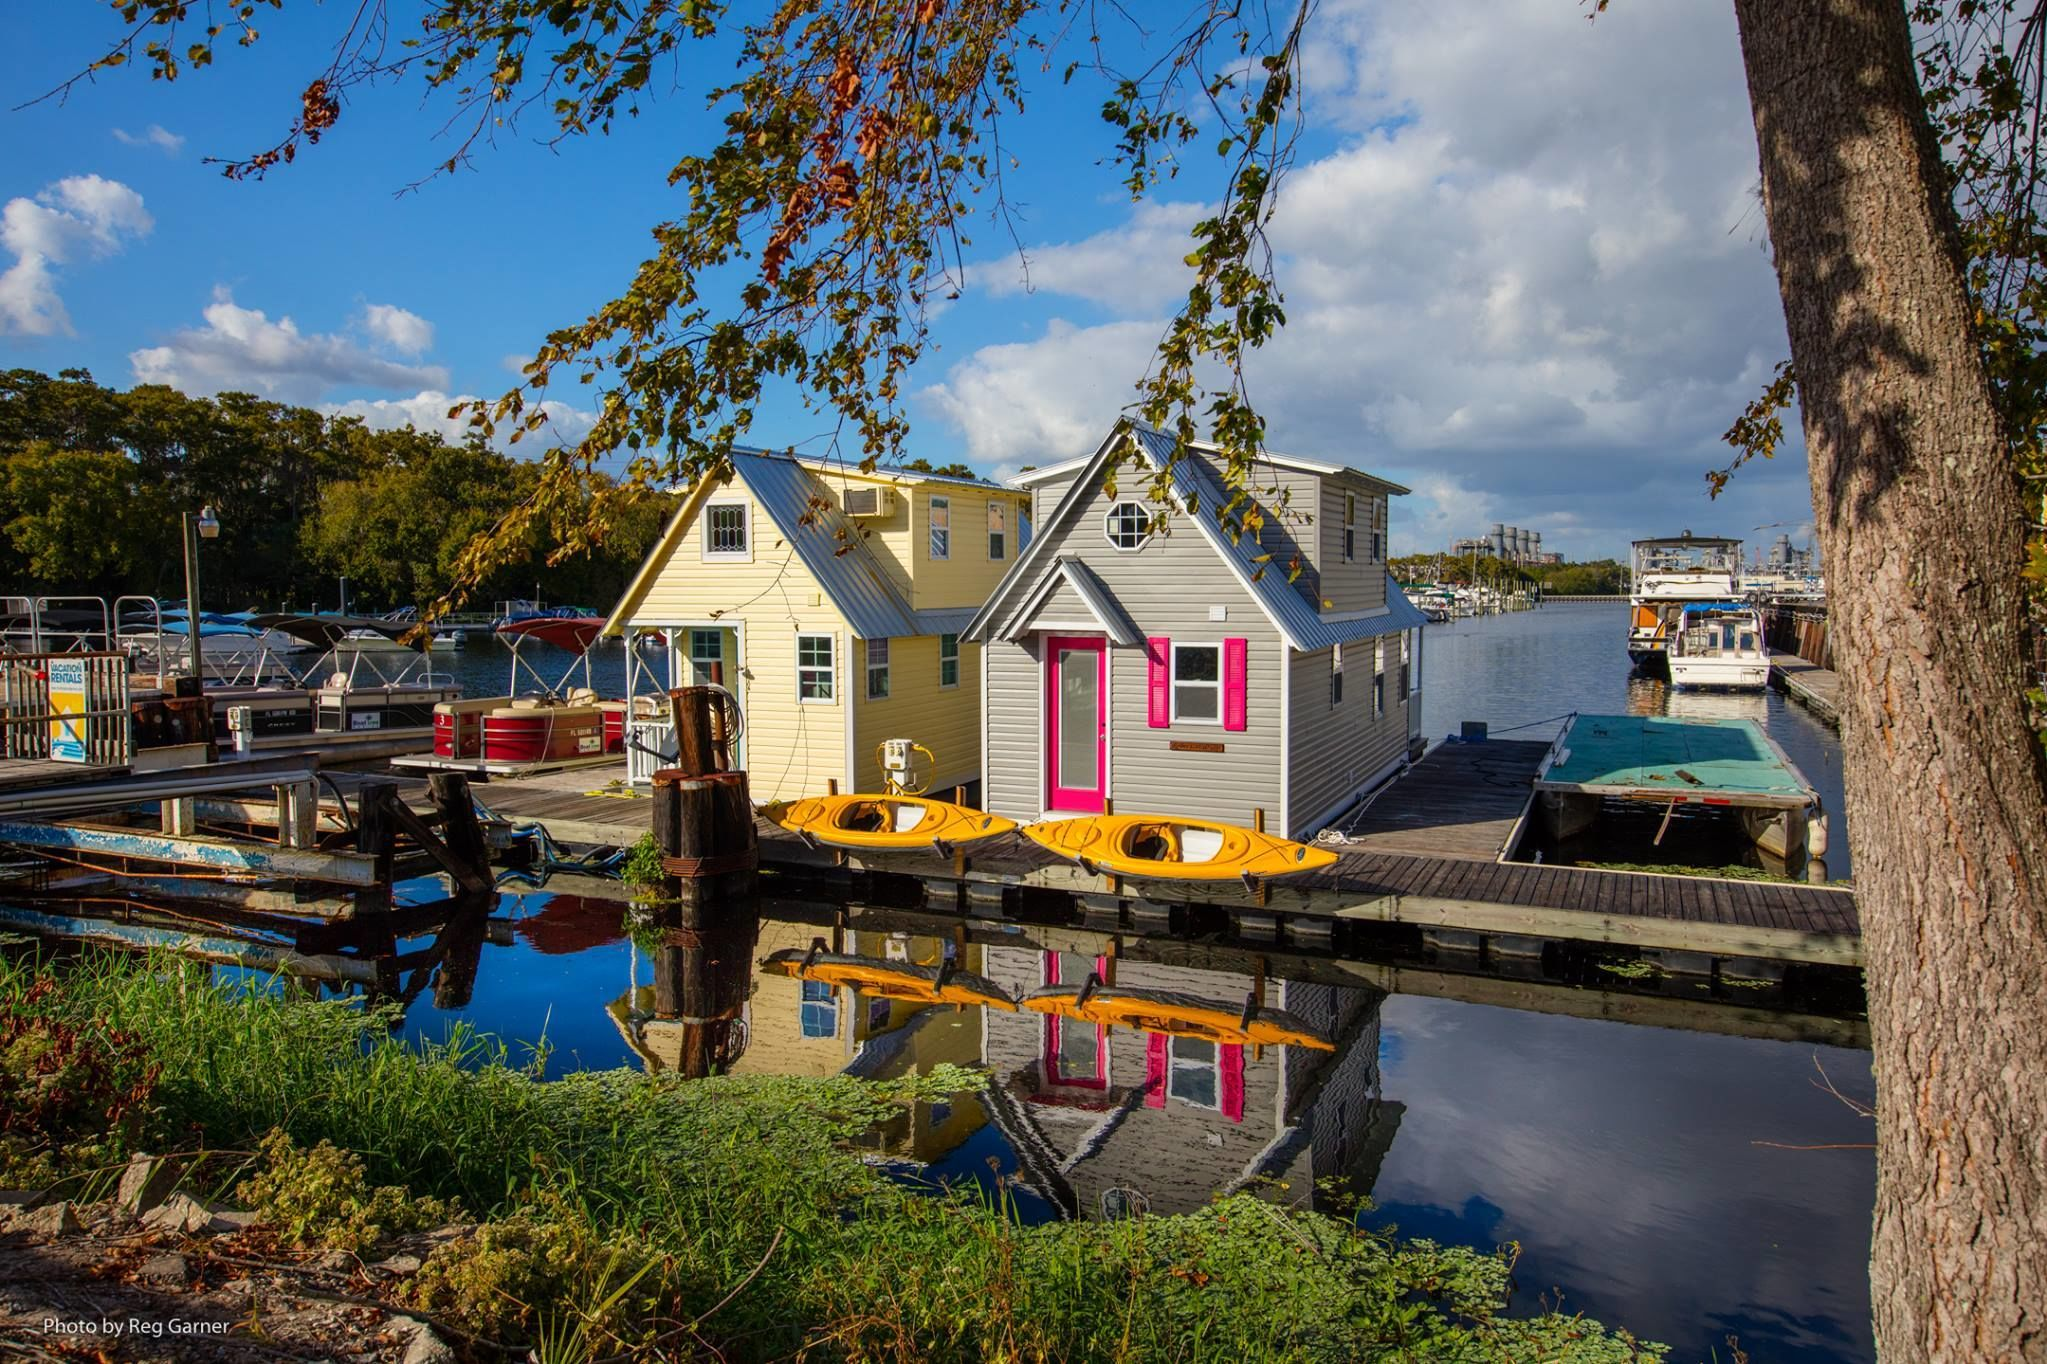 This Florida Couple Is Building Incredible Tiny Houses That Float!